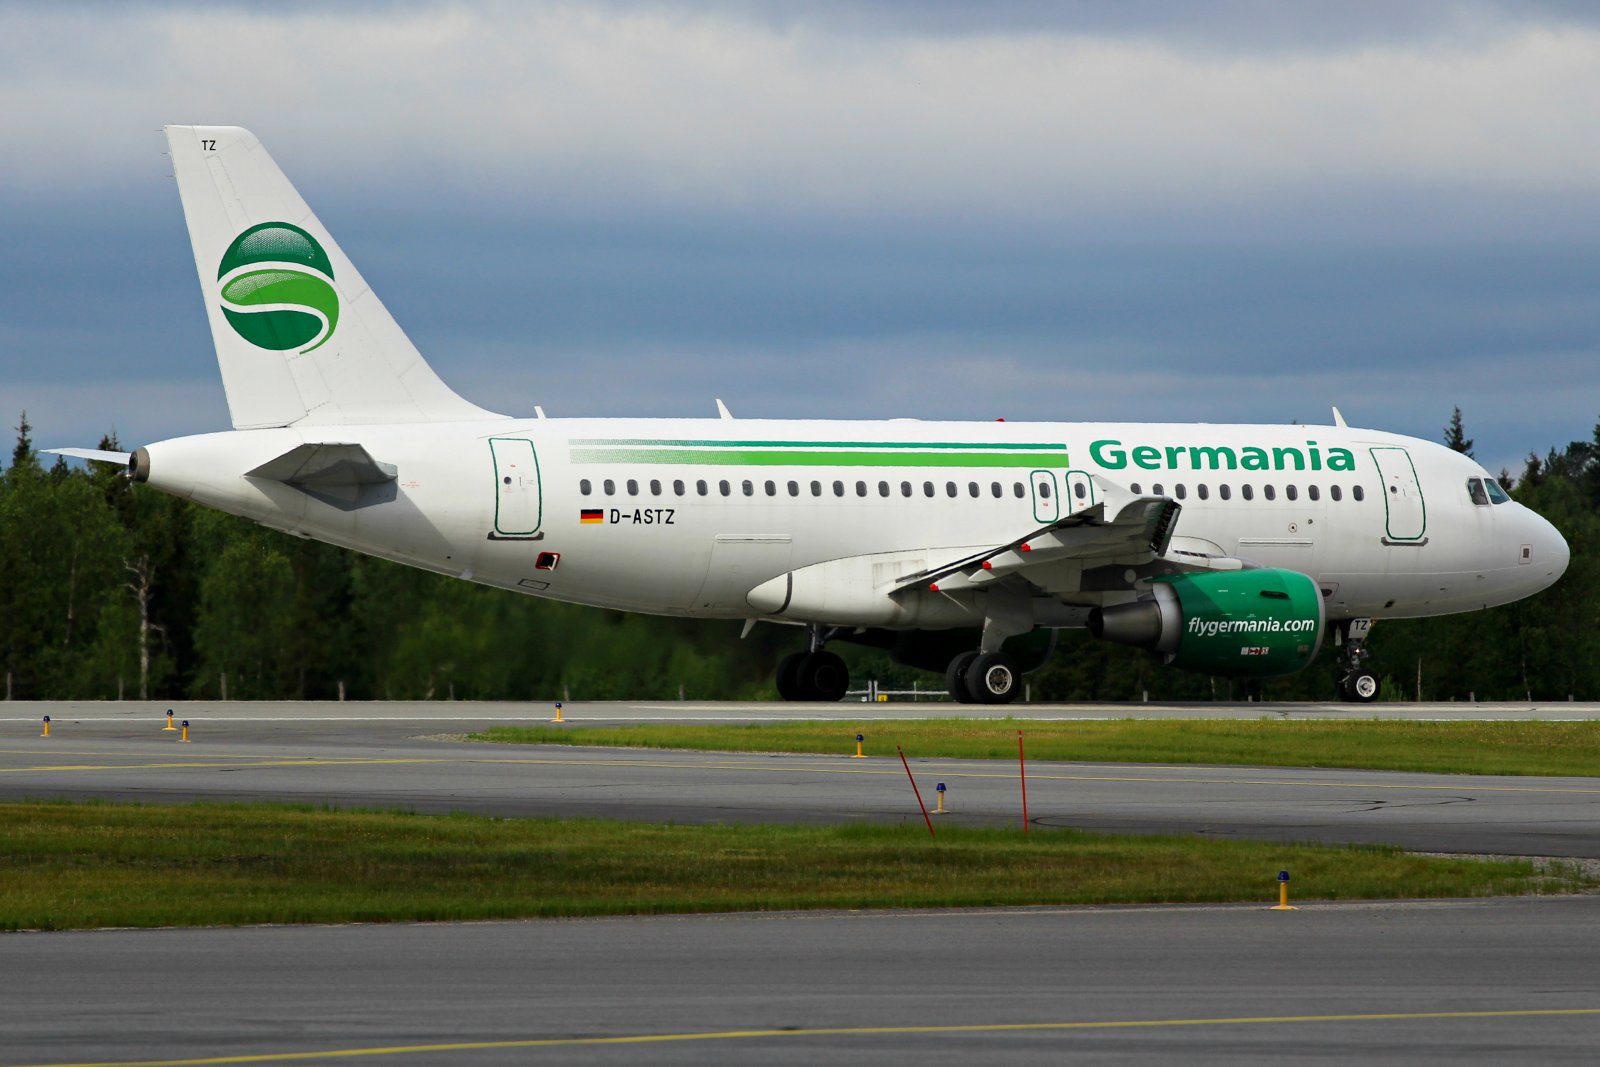 D-ASTZ Germania Airbus A319-112